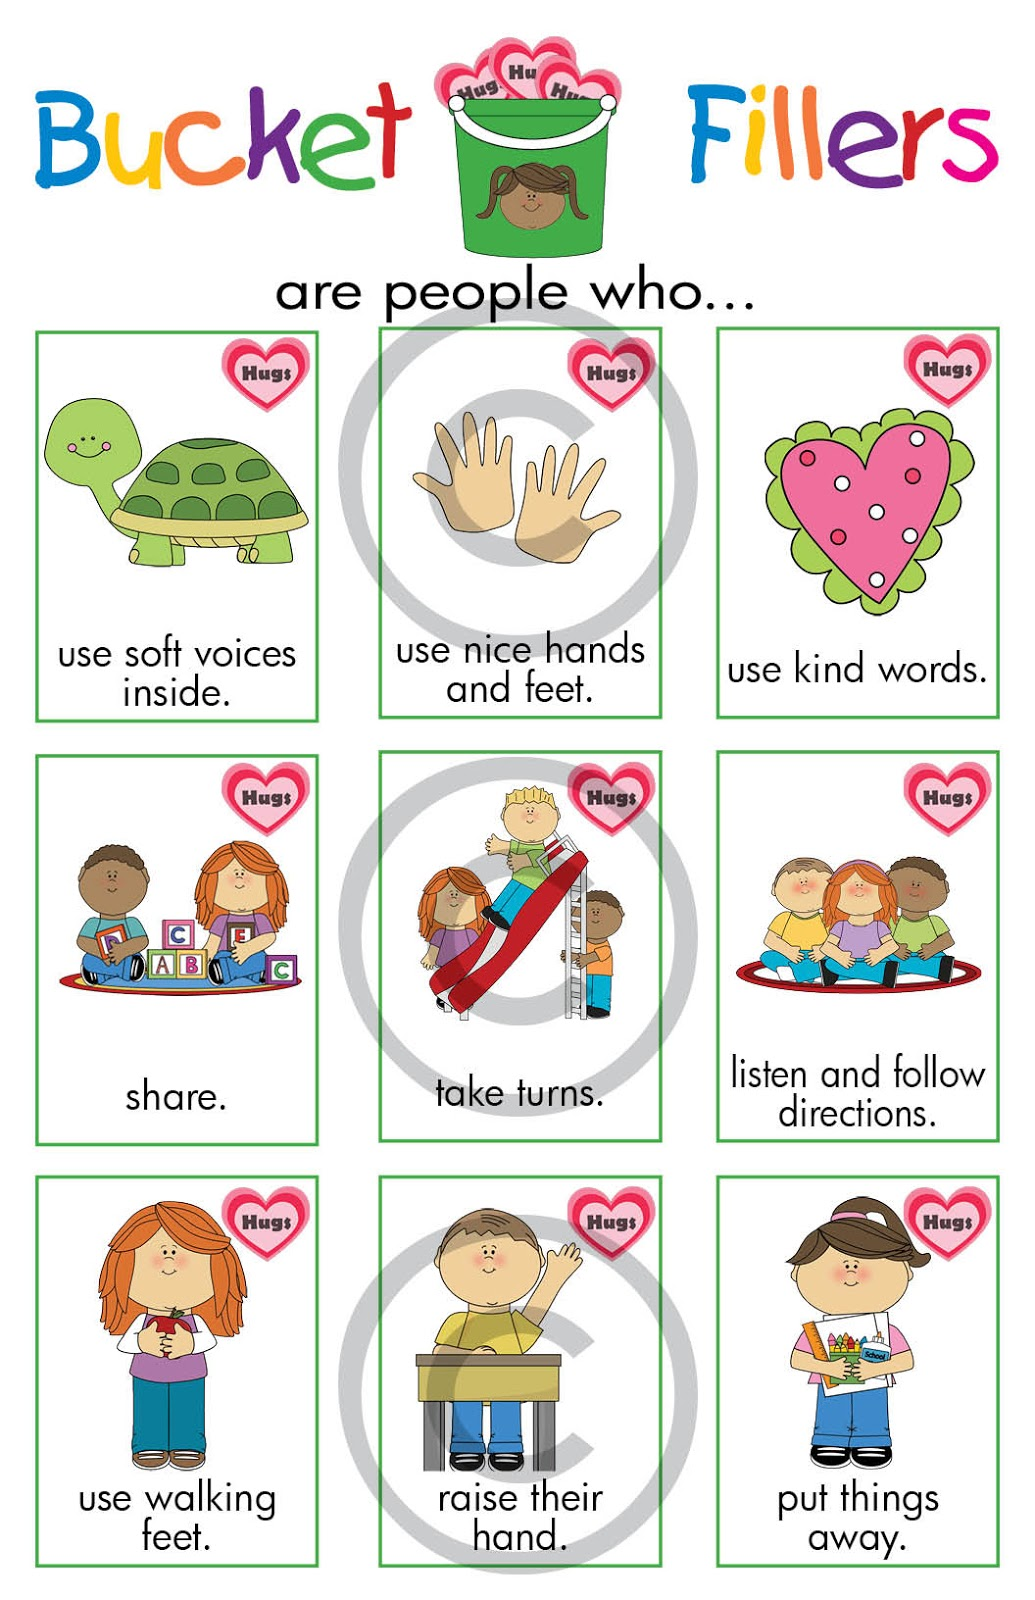 5 Best Images Of We Are Bucket Filler Printables Bucket Filler Clip Art Bucket Filler Activities And Bucket Filler Quotes Printablee Com